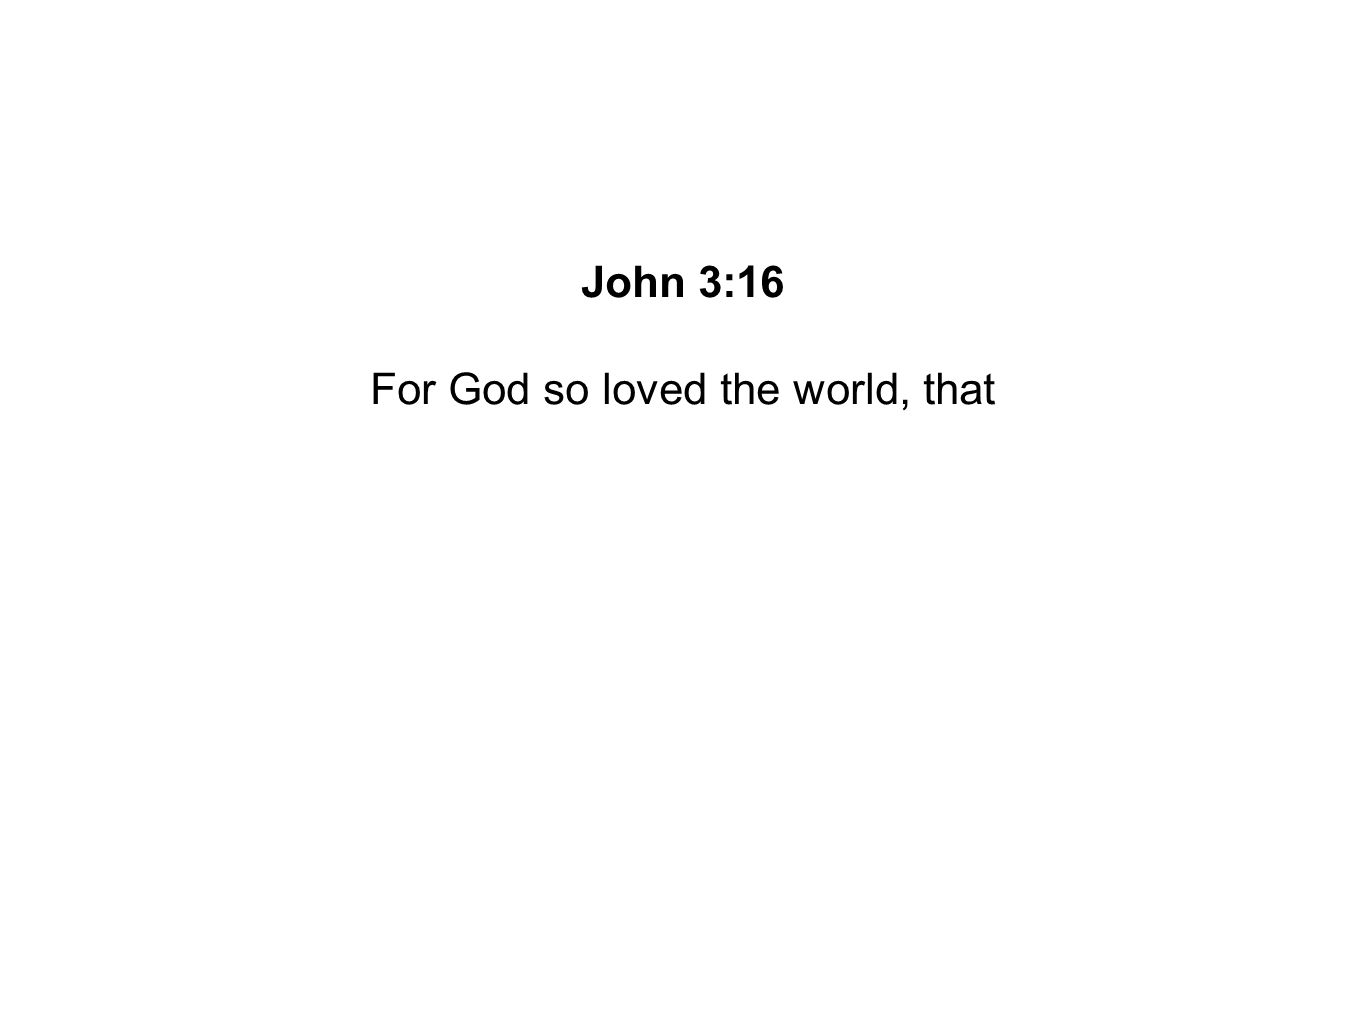 For God so loved the world, that